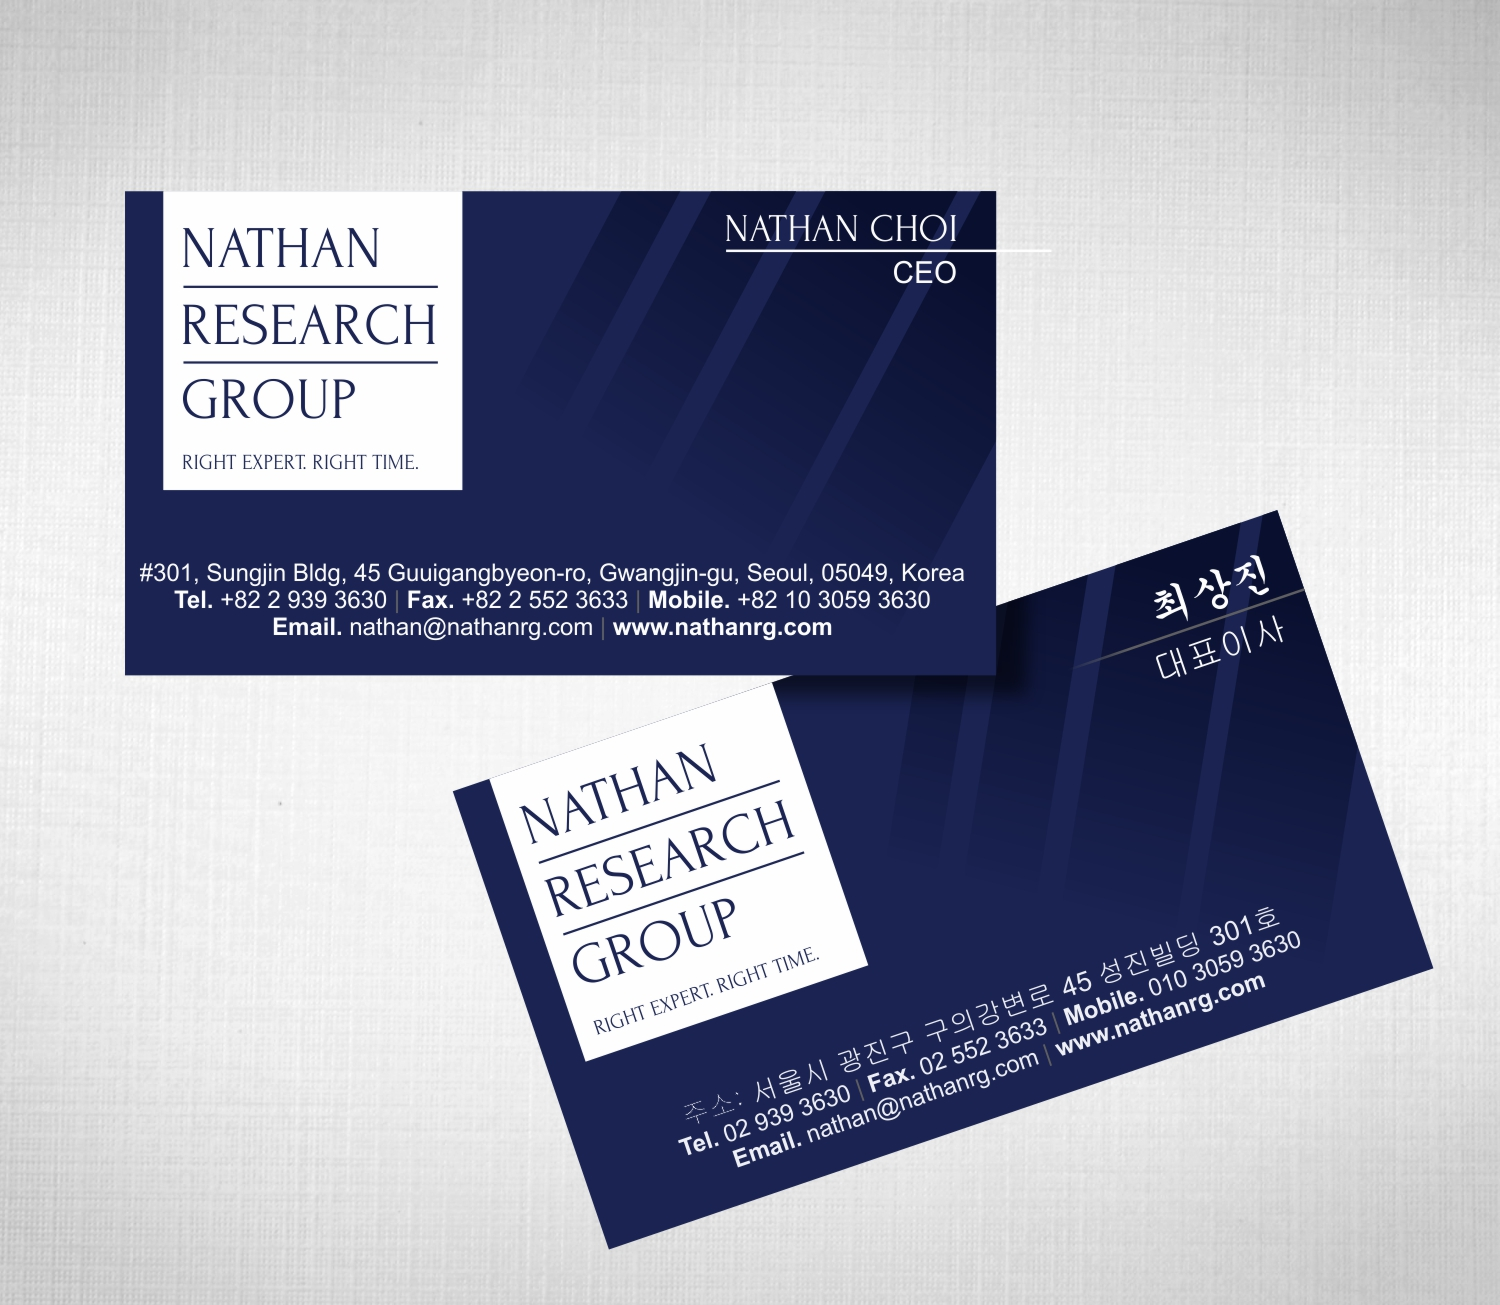 Elegant playful recruitment business card design for nathan business card design by hobographix for nathan research group inc design 19310863 reheart Images